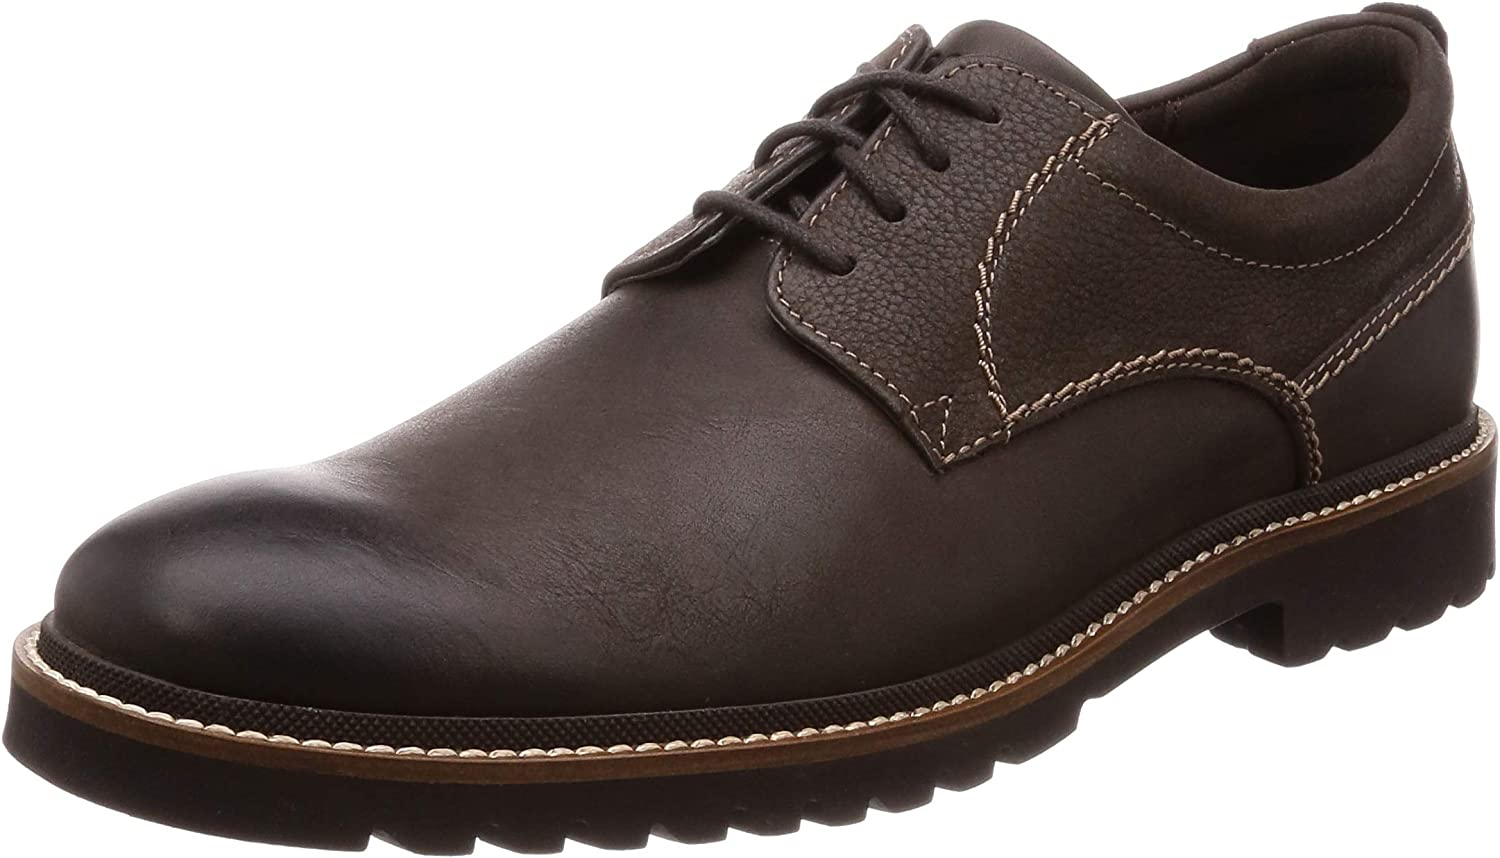 Rockport Marshall Plain Toe, Zapatos de Cordones Oxford para Hombre